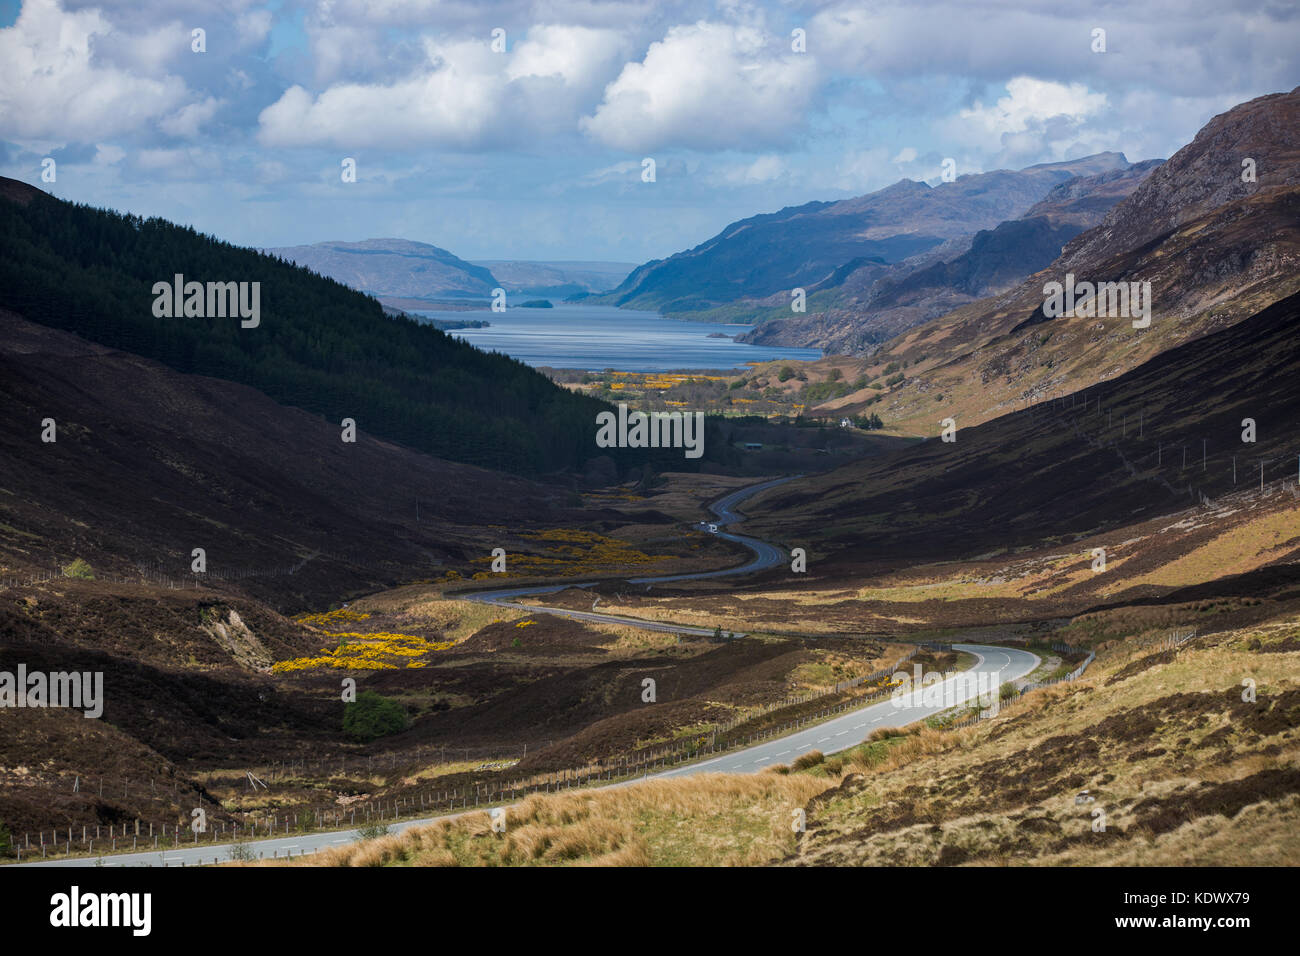 Glen Docherty and the road to Kinlochewe, Wester Ross, Scotland - Stock Image